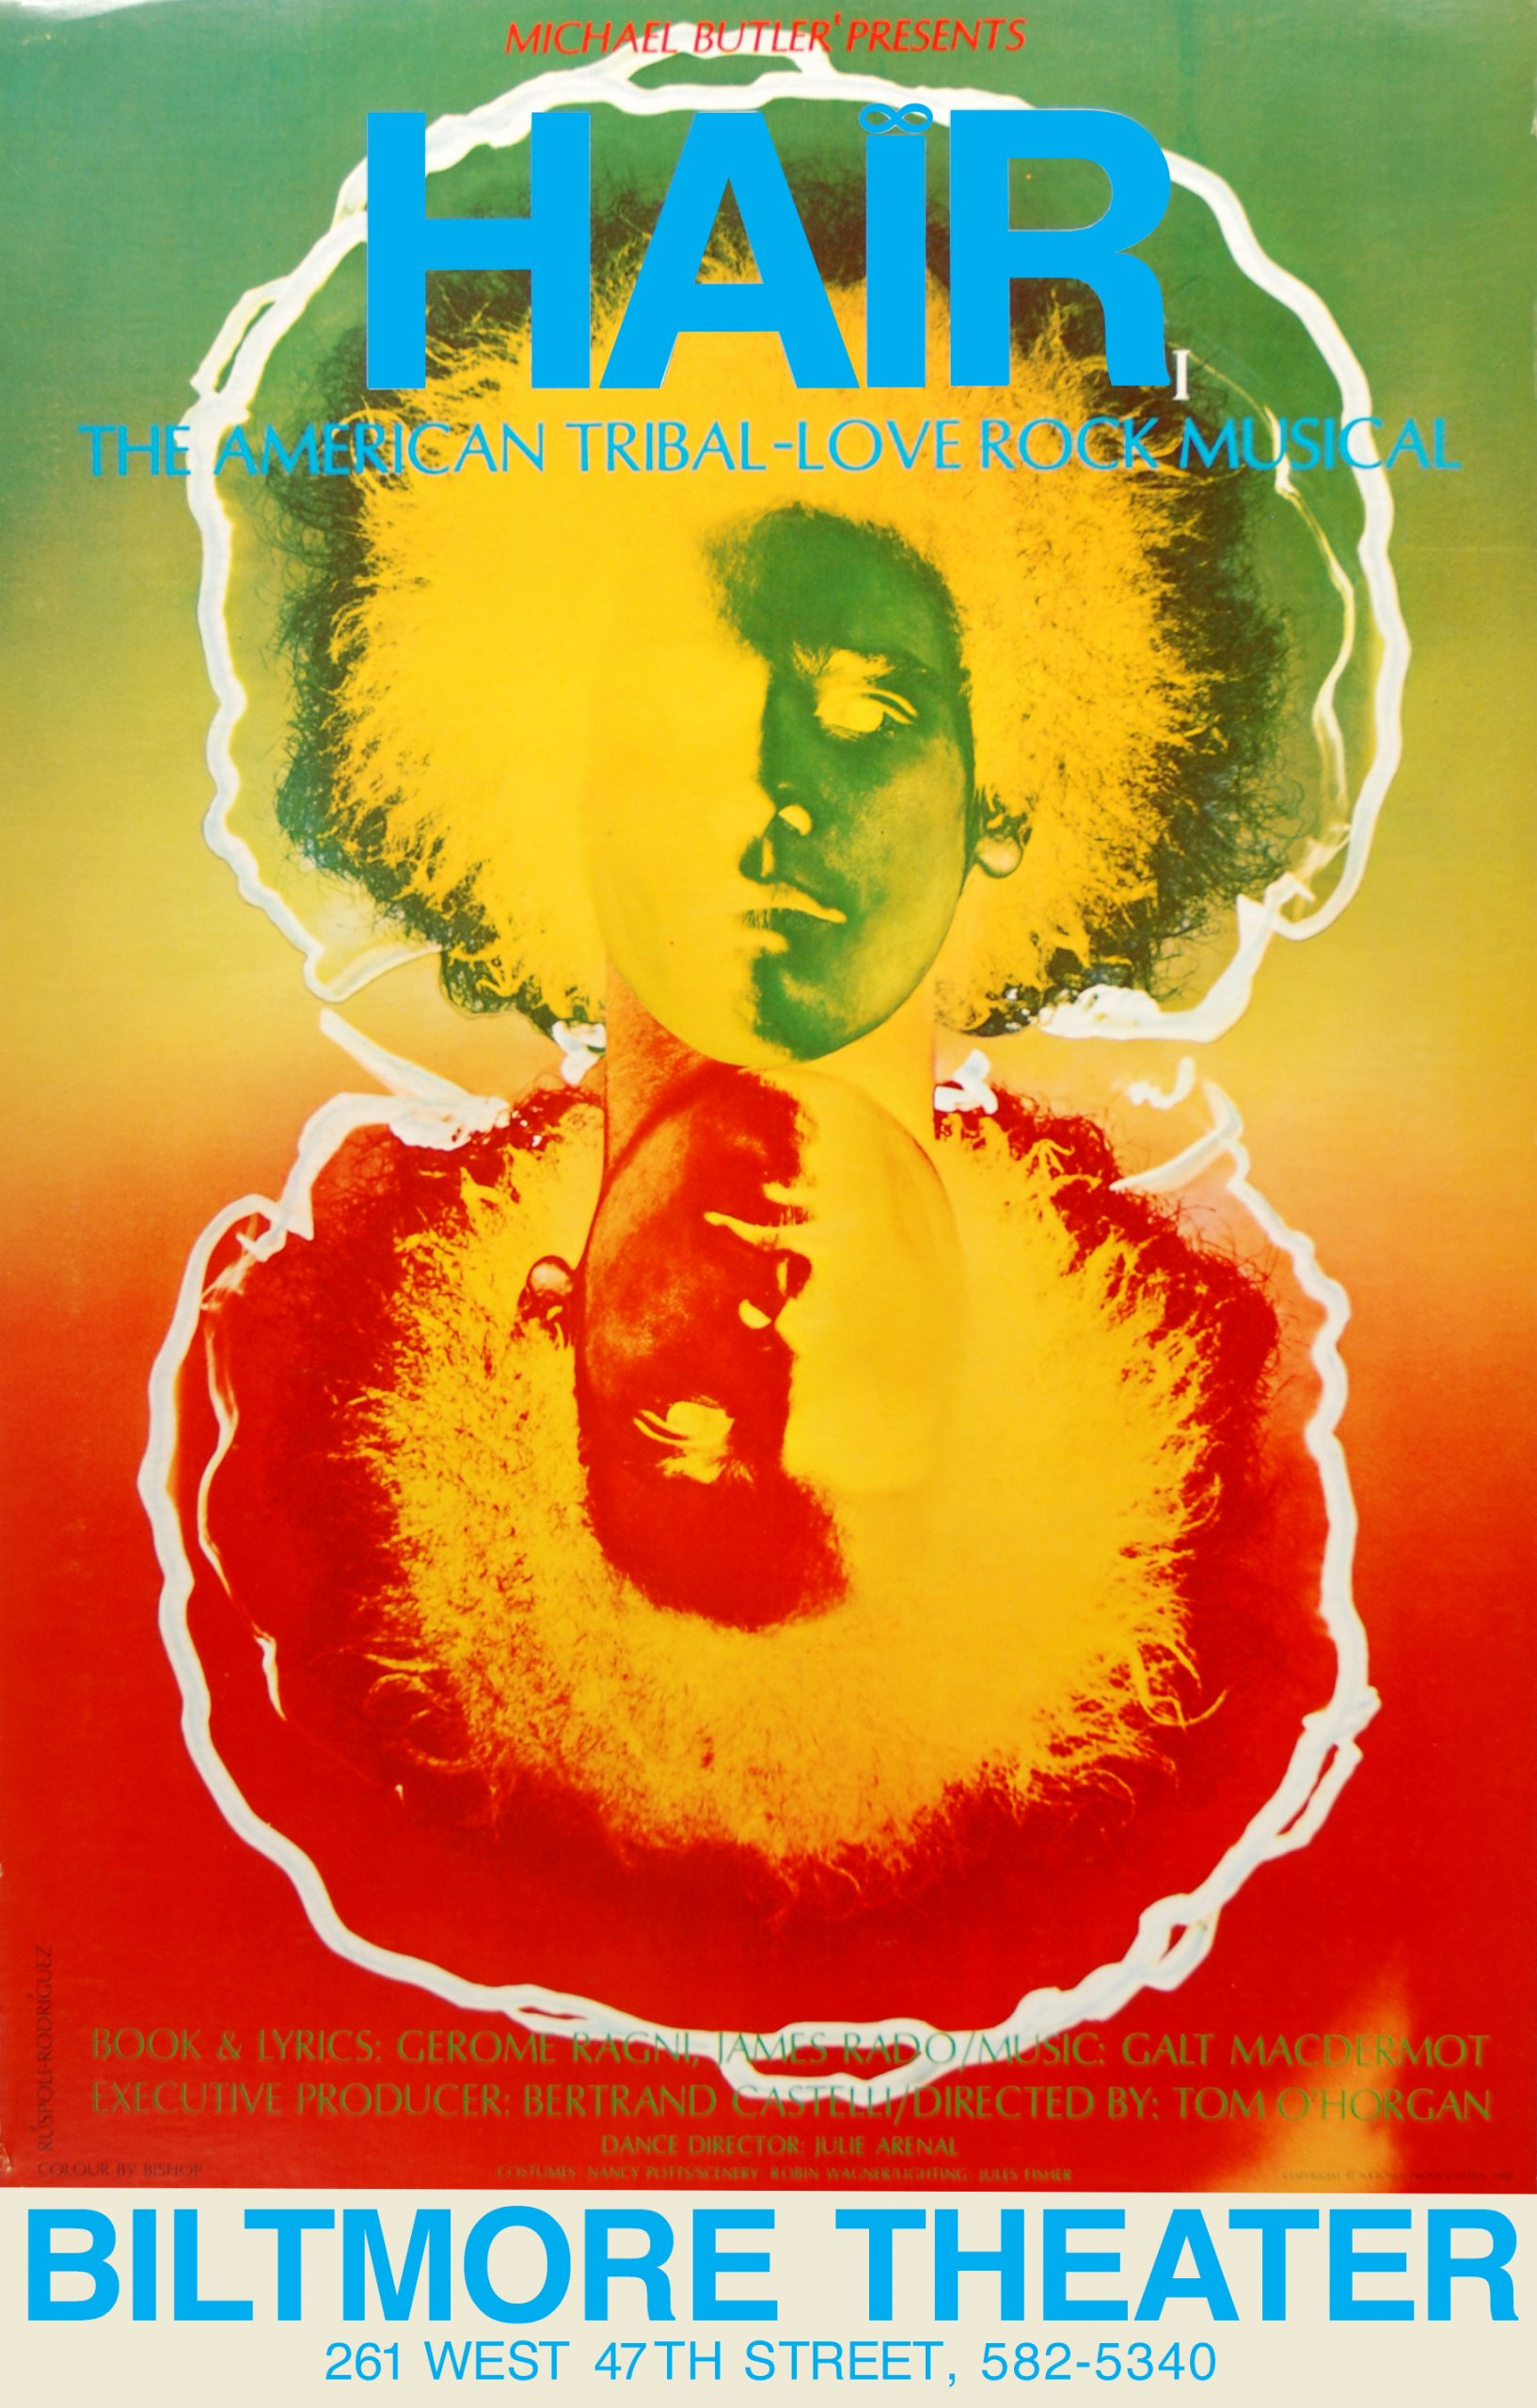 poster with a horizontally reflected image of a man with big hair in a green yellow and red gradient color